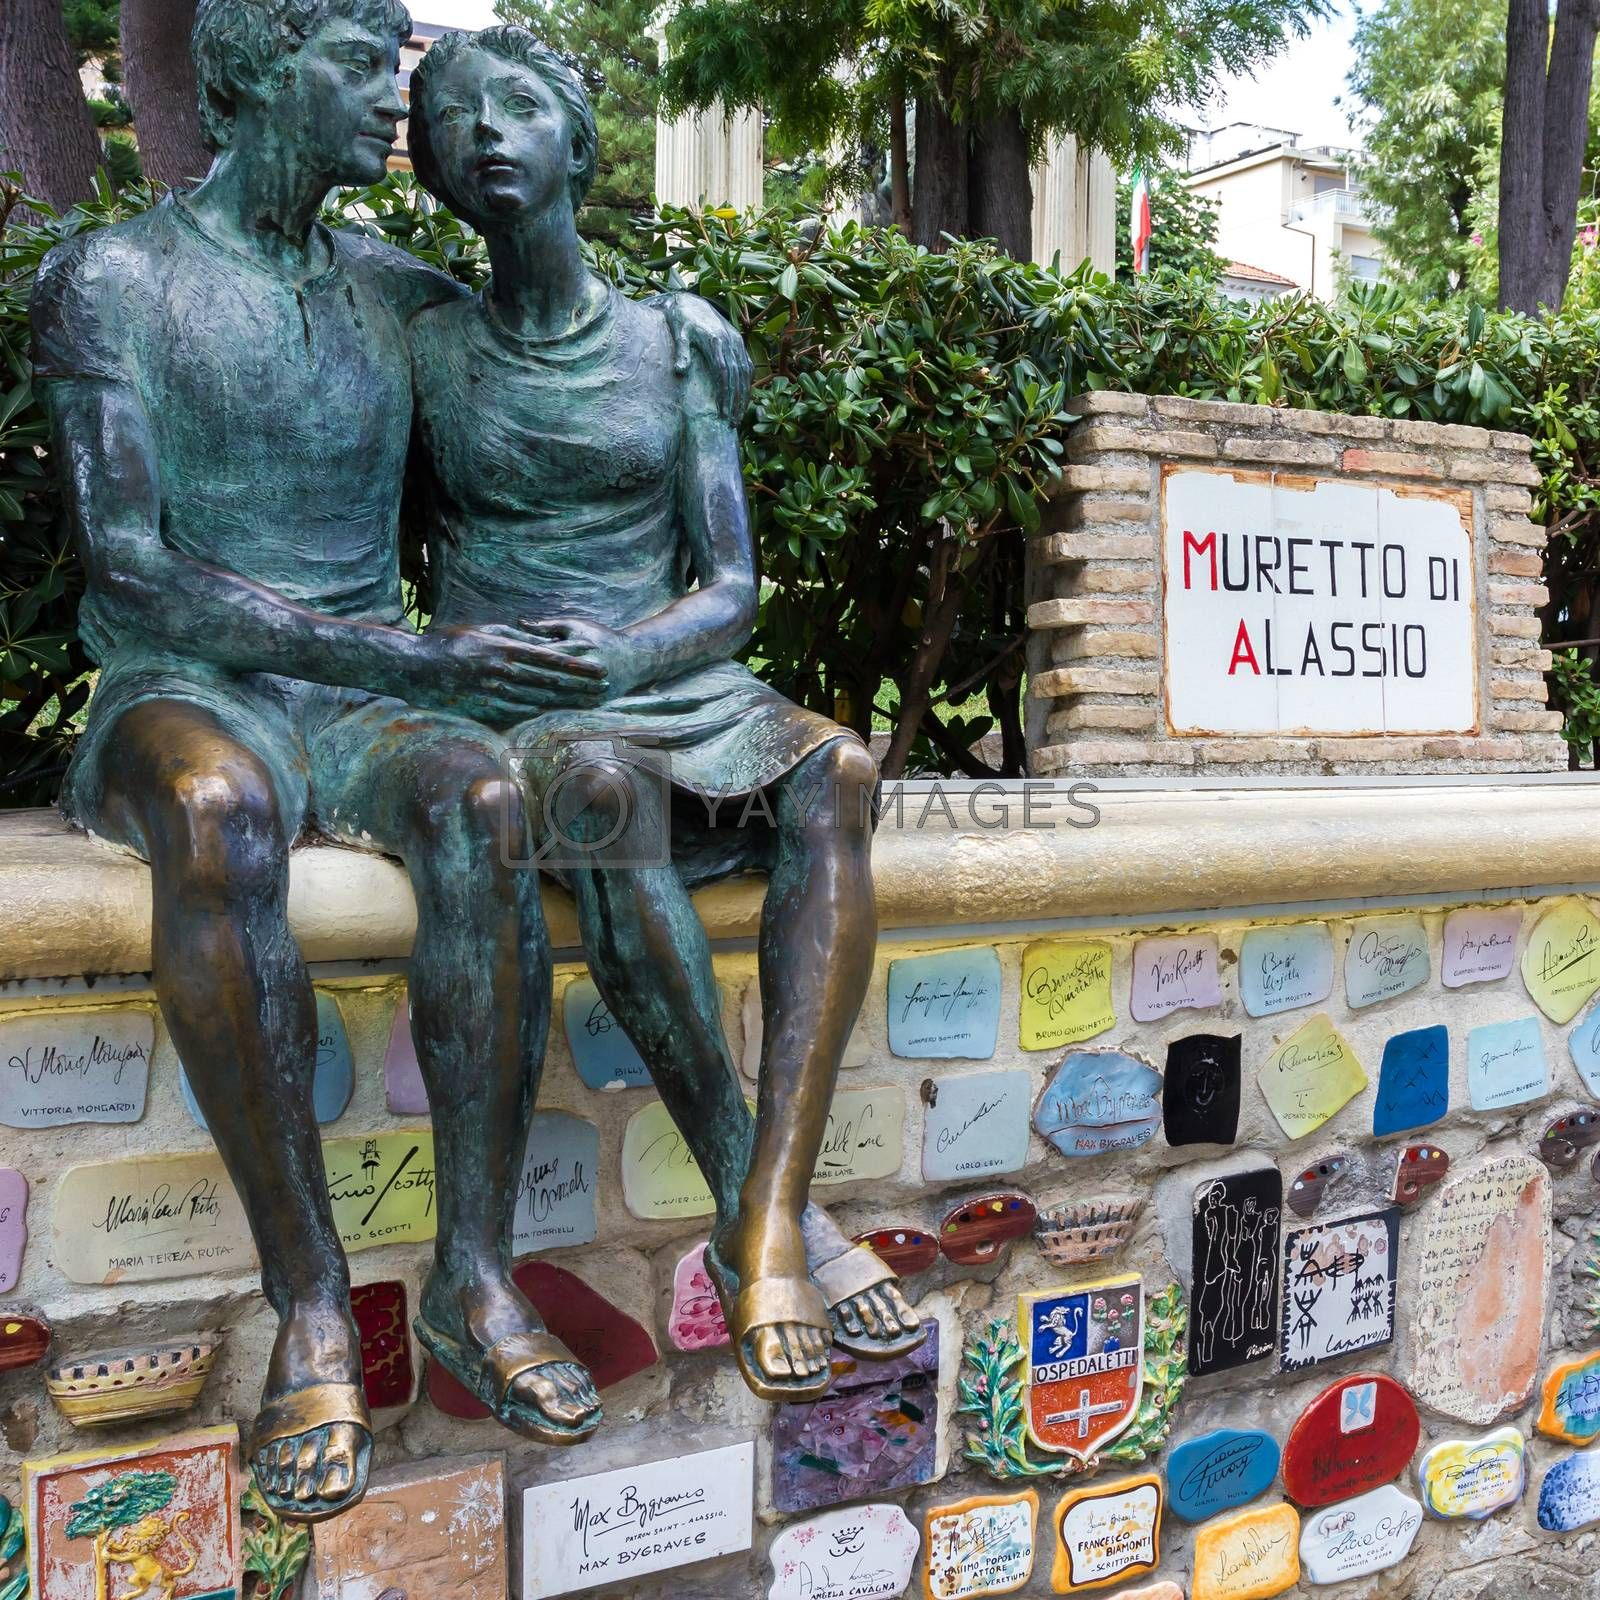 Italy. Muretto di Alassio. The famous Little Wall in Alassio with the bronze statue of the lovers. Alassio (SV), ITALY - August 22, 2017.